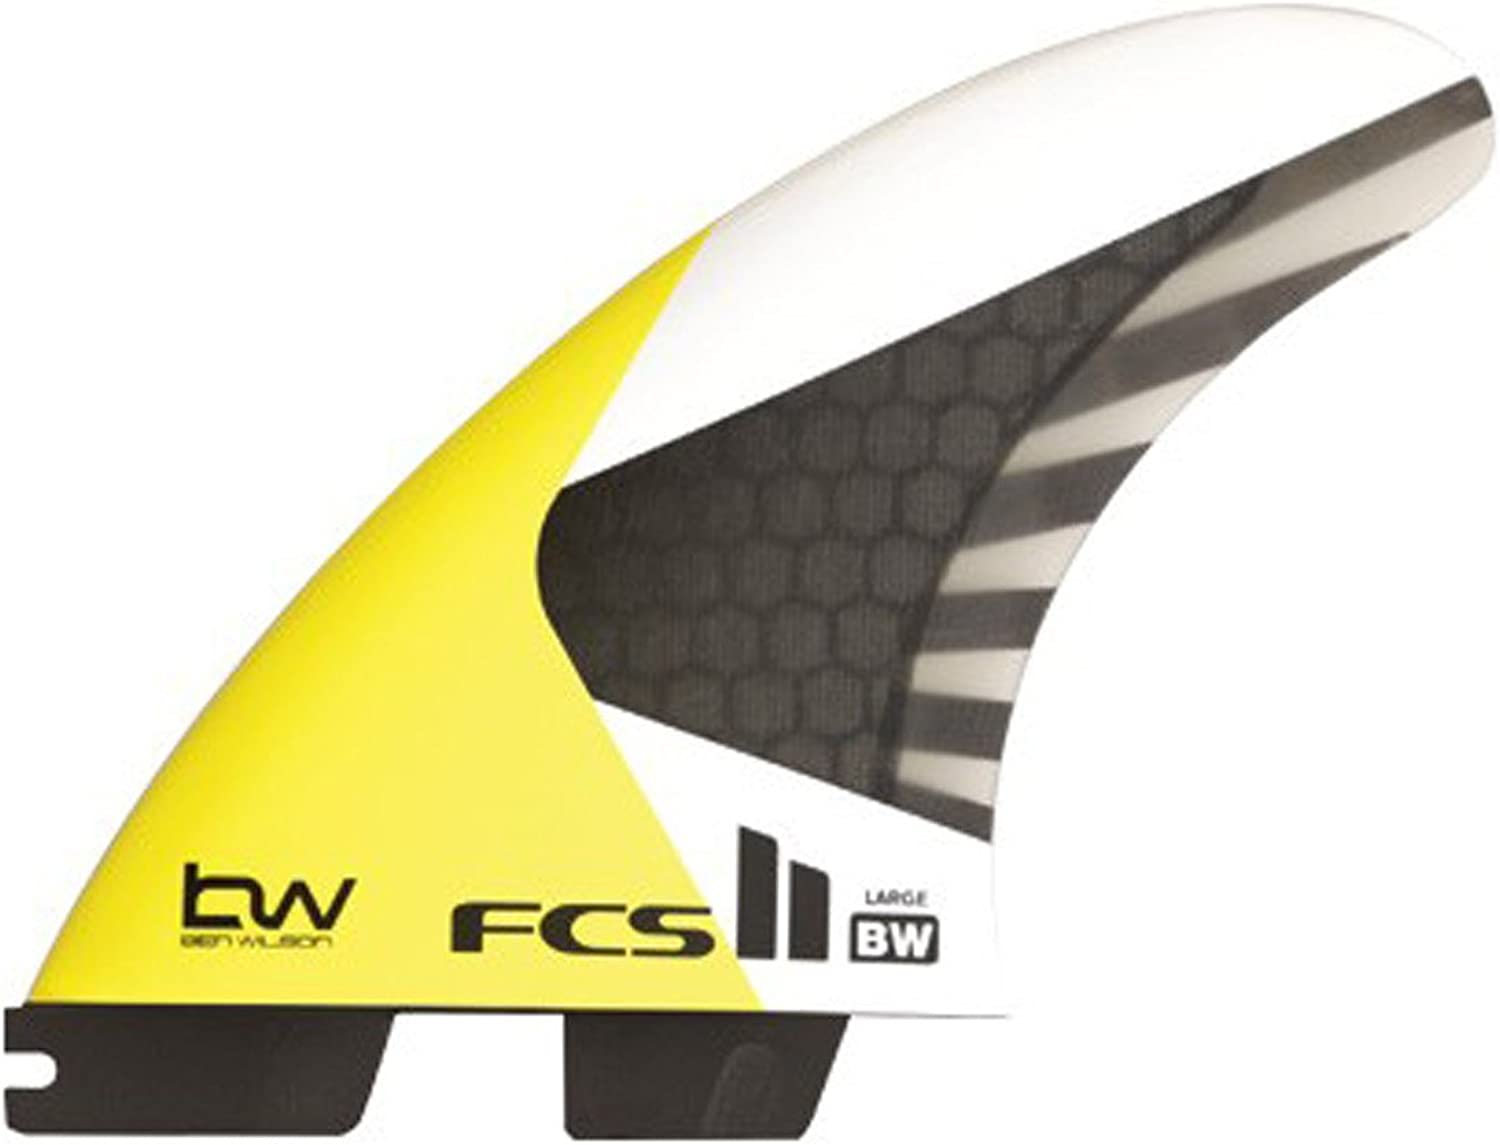 FCS II Ben Wilson Kite Surfing Tri Fin Set  High Speed foil Matrix